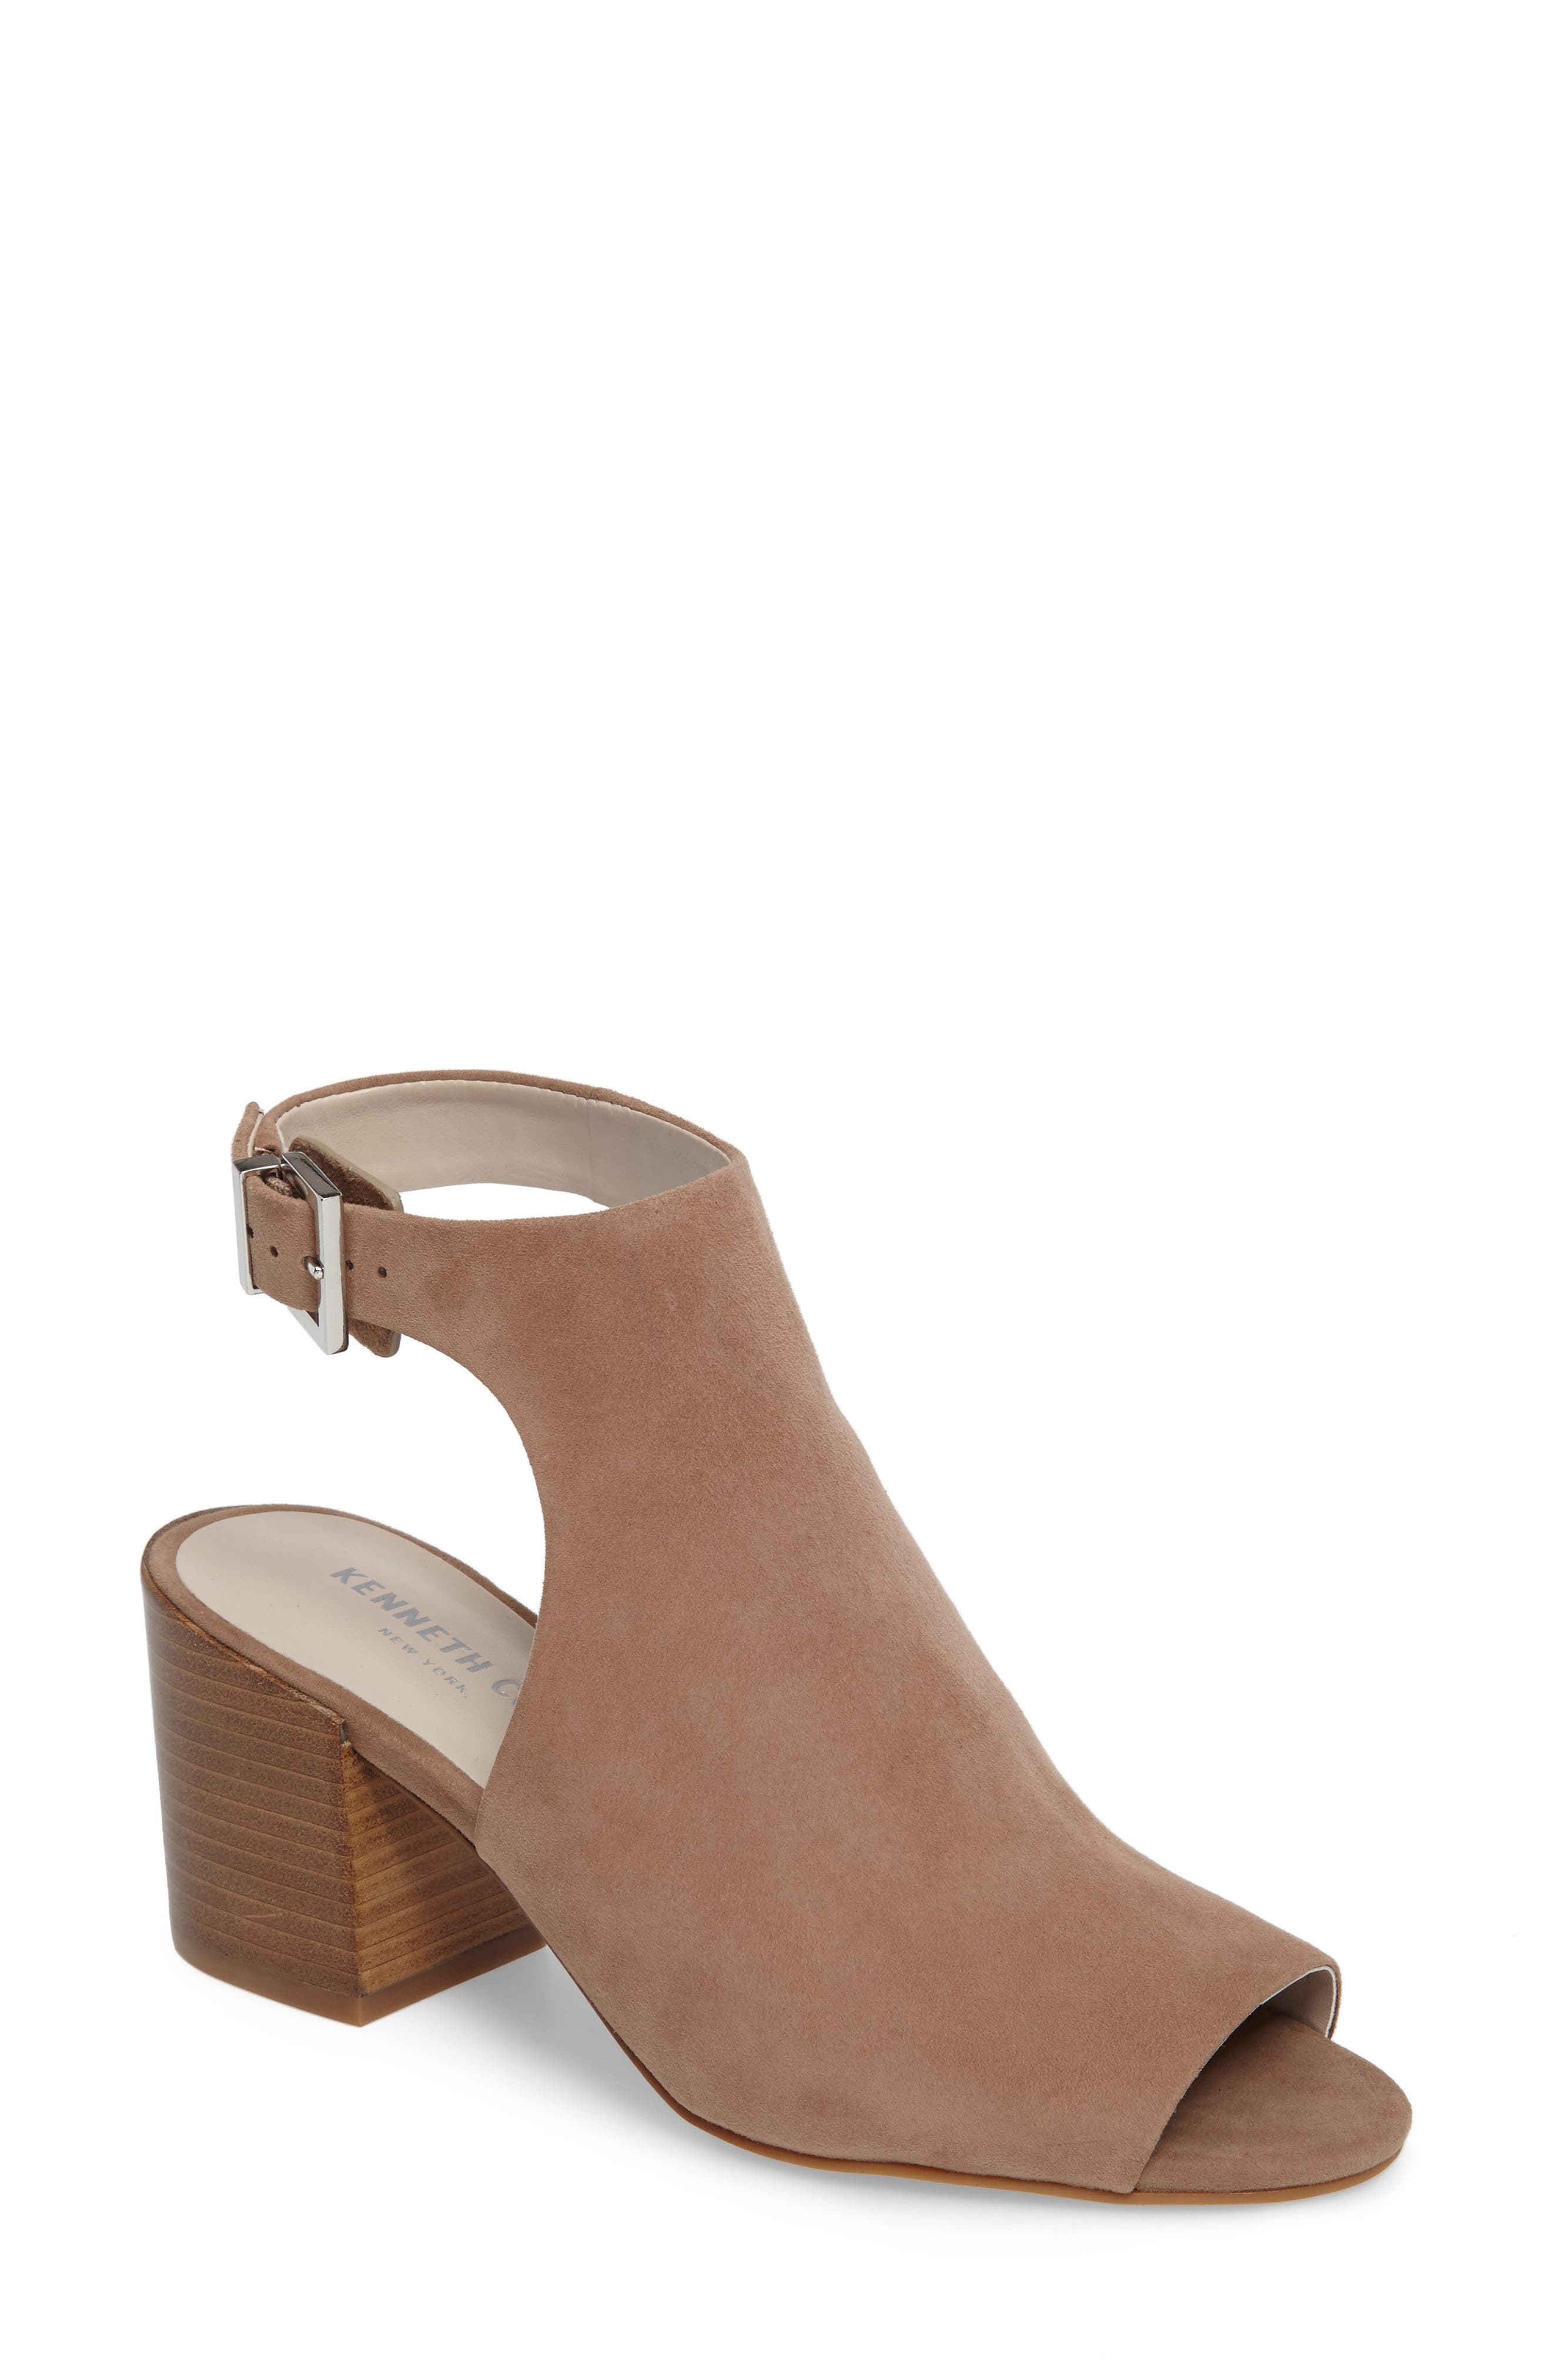 Alternate Image 1 Selected - Kenneth Cole New York 'Val' Sandal (Women)